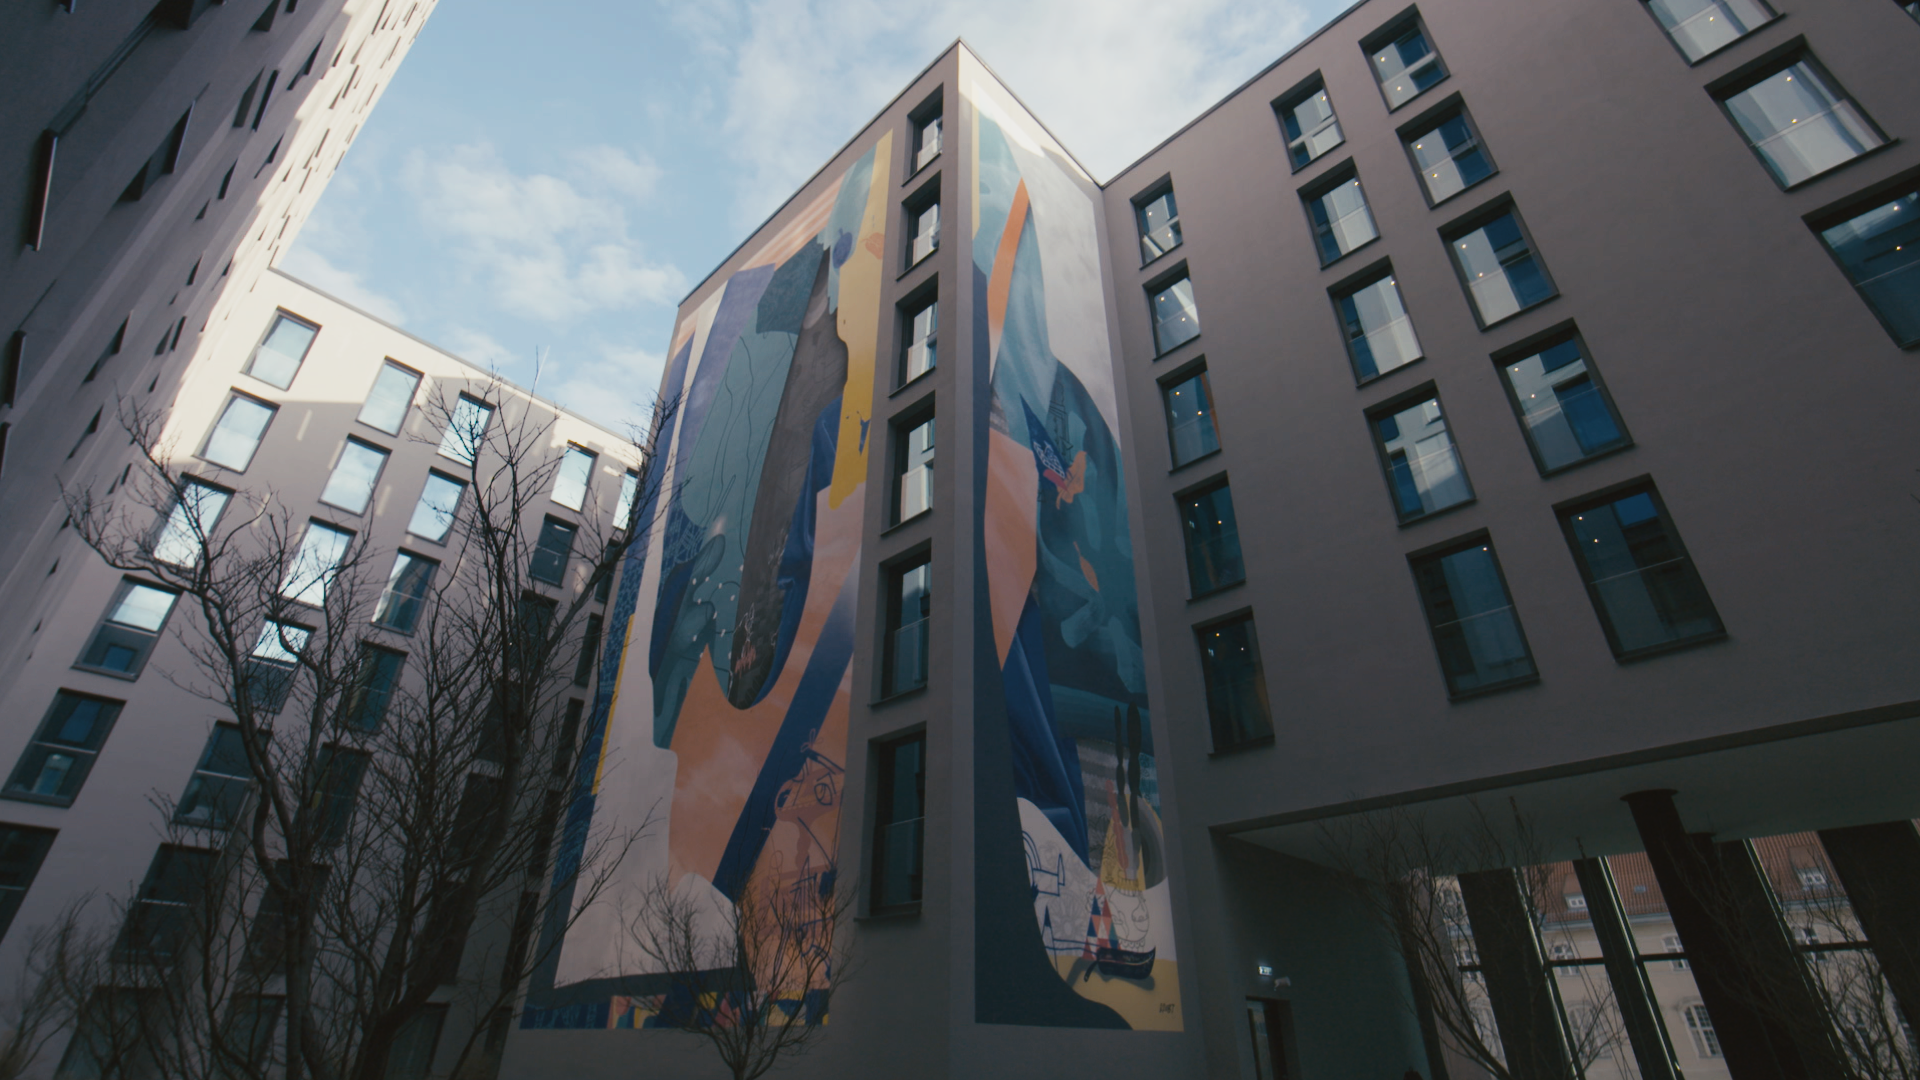 EDITUDE PICTURES KLUB7 for Motel One